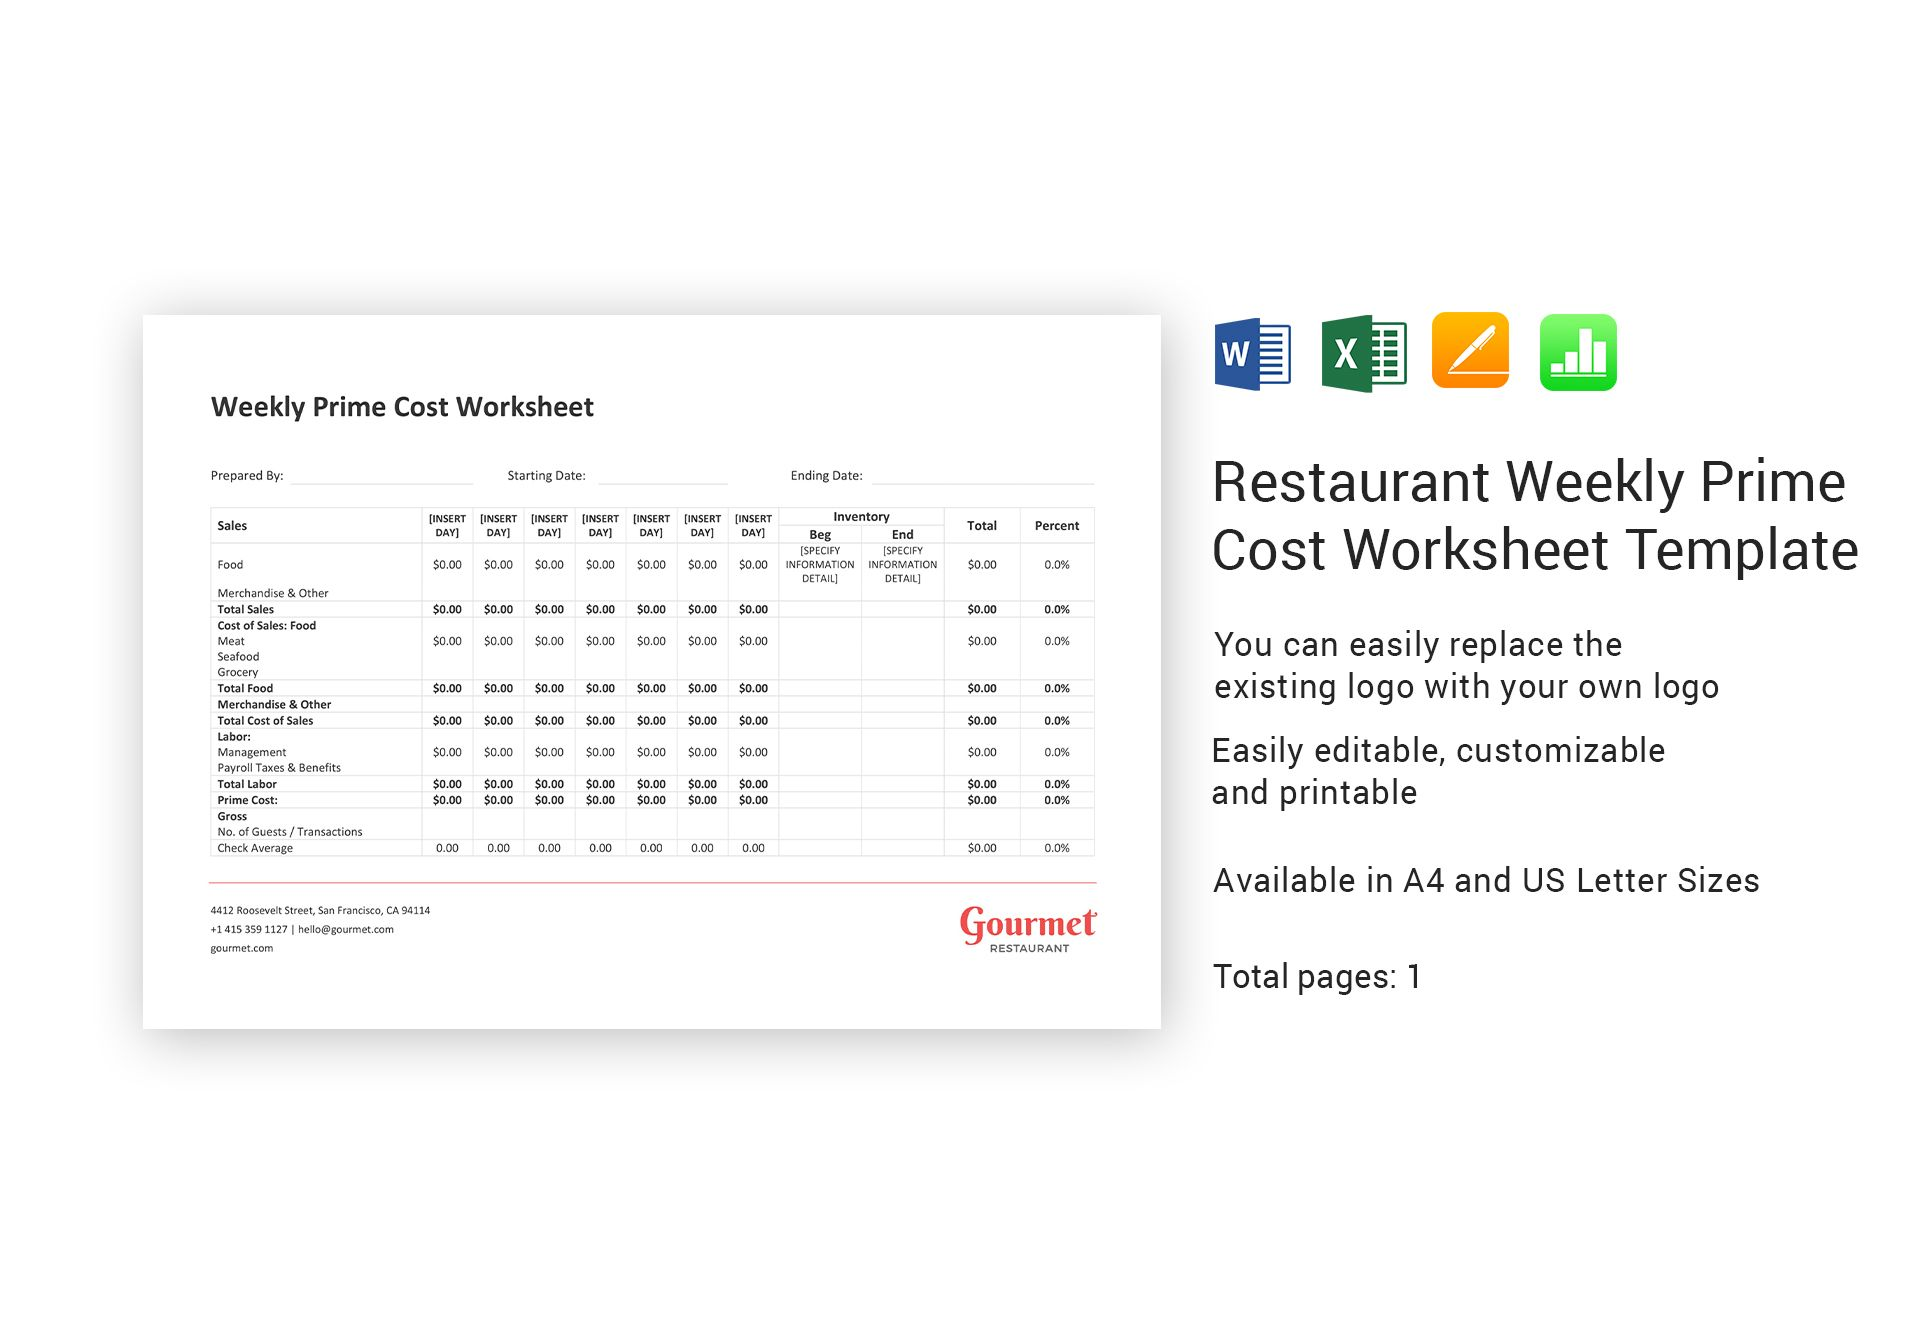 Restaurant Weekly Prime Cost Worksheet Template In Word